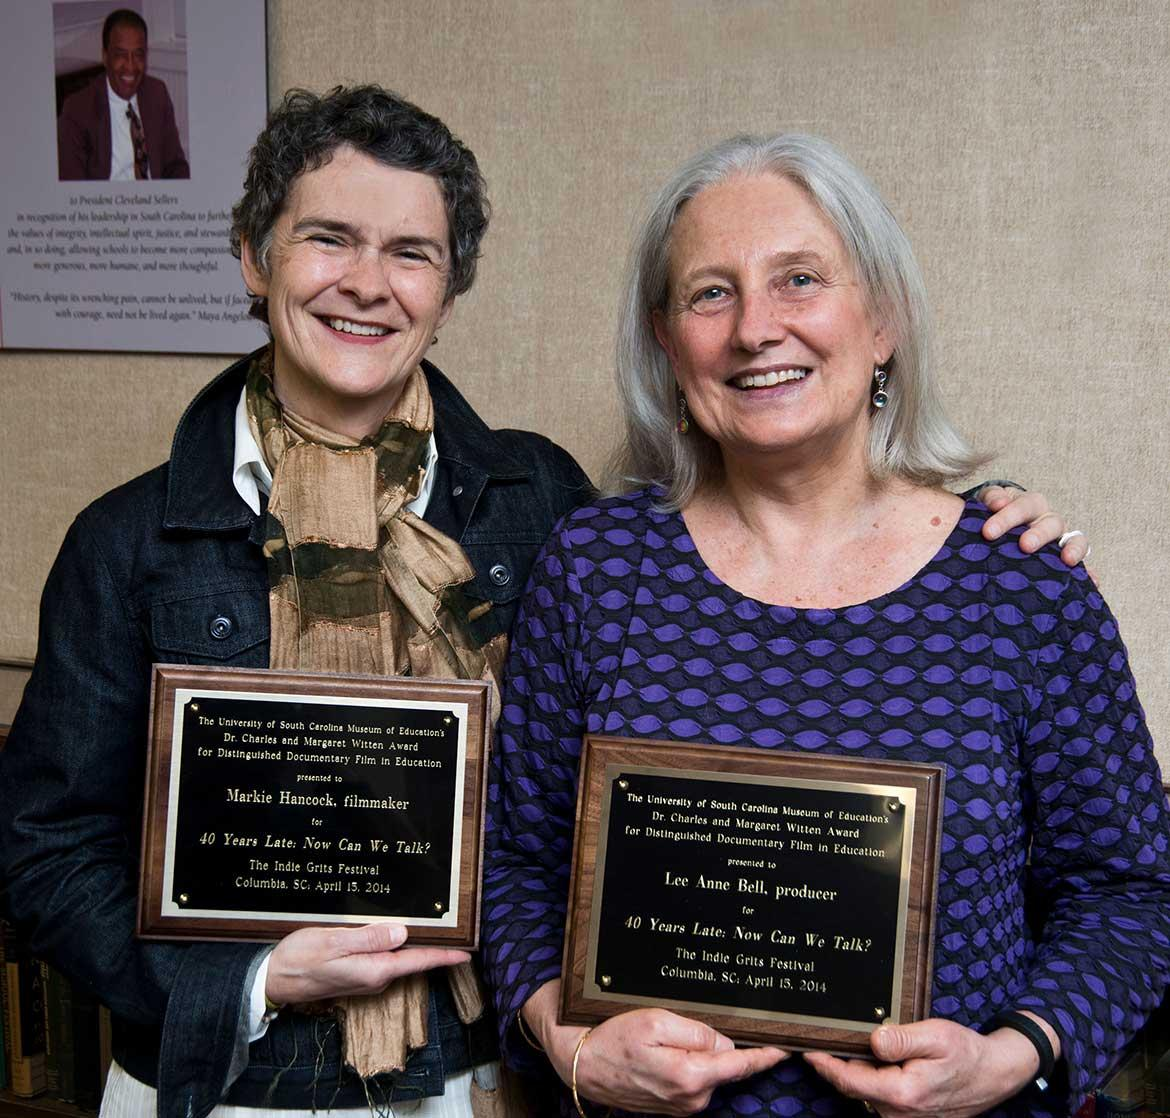 L-r:  2014 Witten Award recipients Markie Hancock and Lee Ann Bell